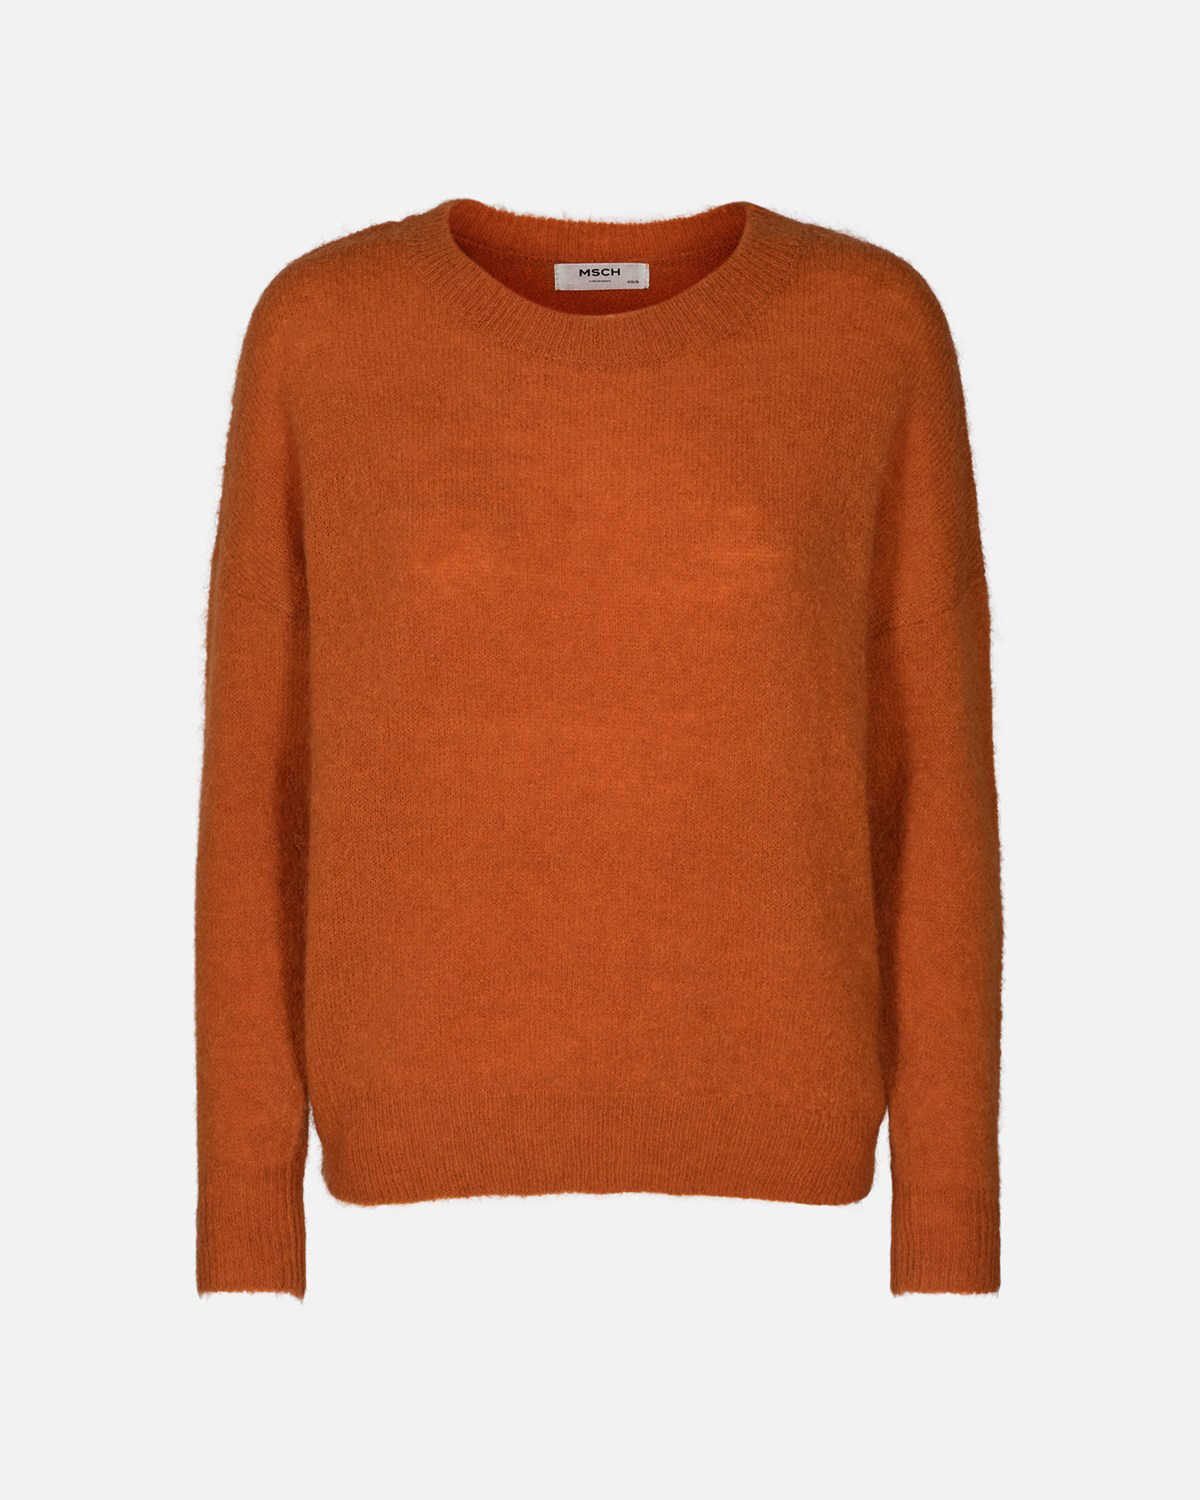 MSCH Femme Mohair O-pullover, apricot orange